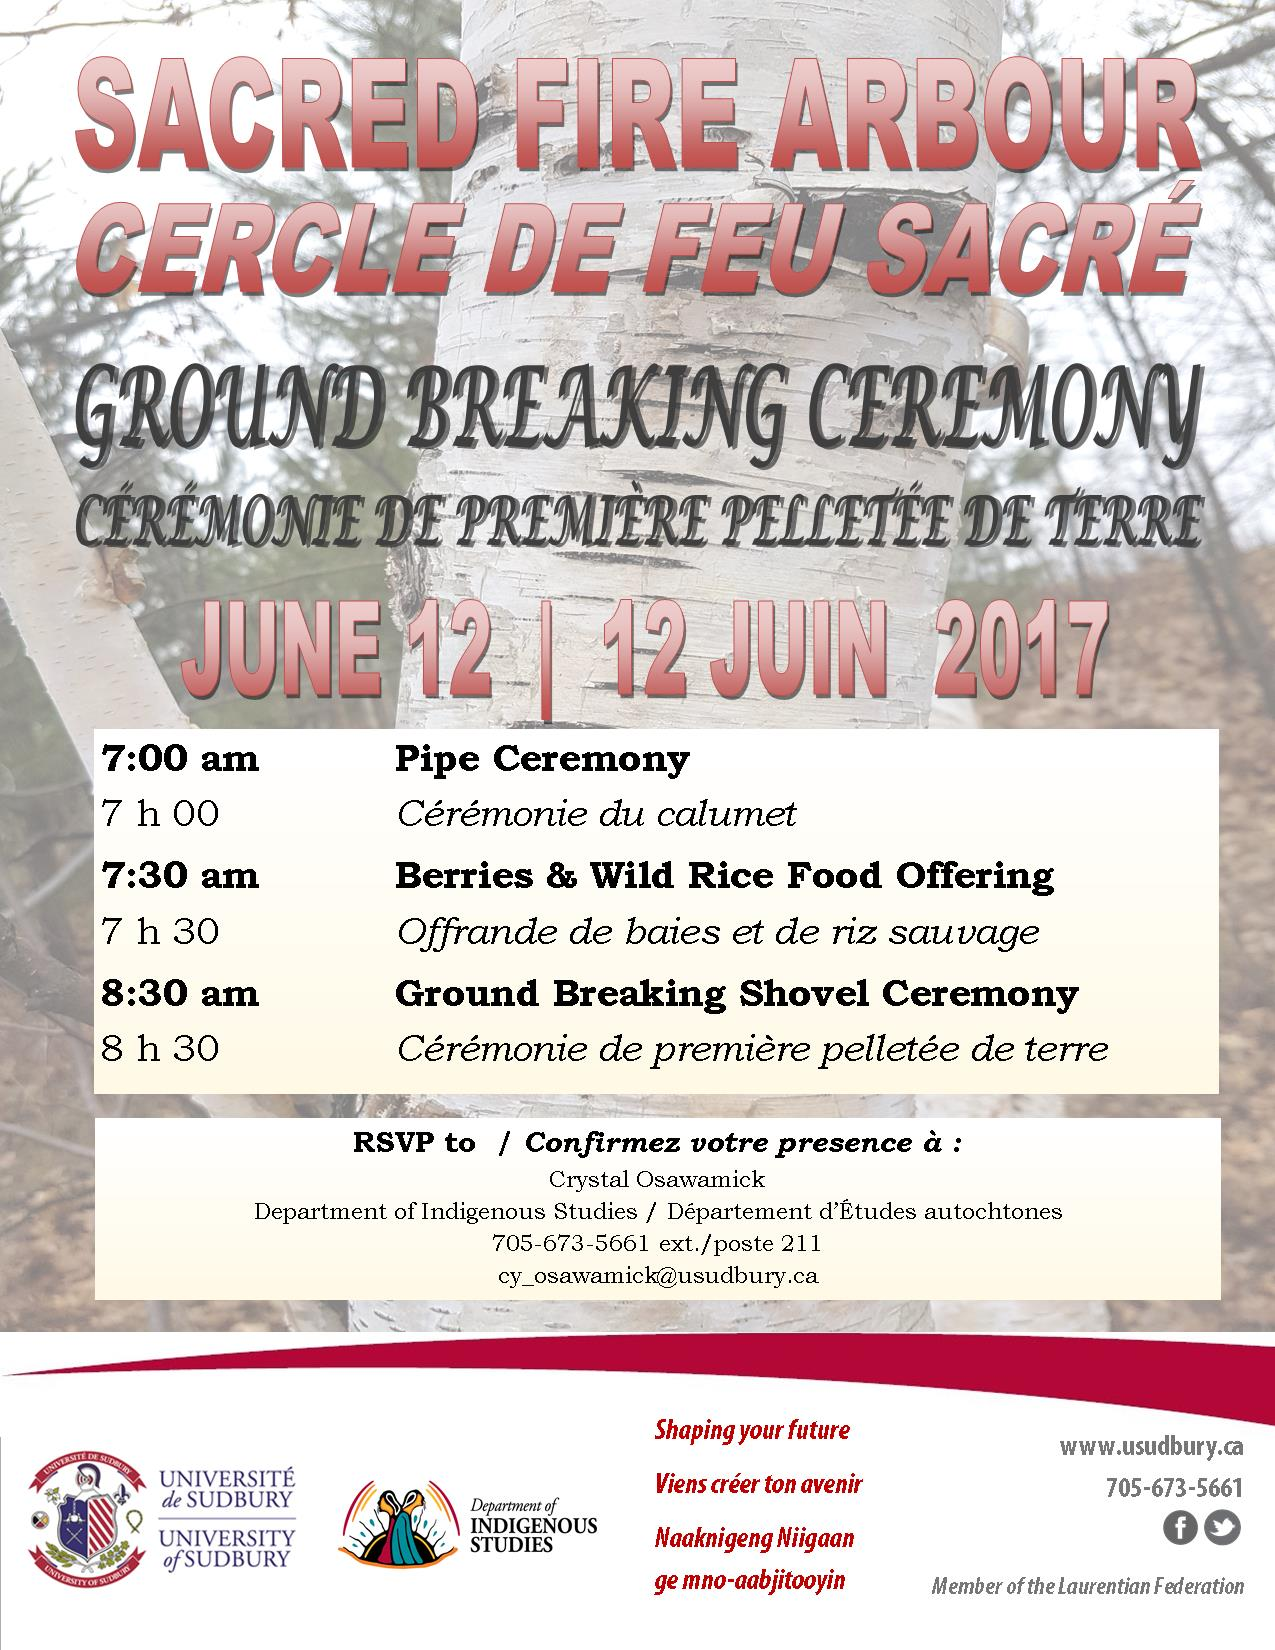 2017 06 02 Sacred Fire Arbour Ground Breaking Ceremony BIL2